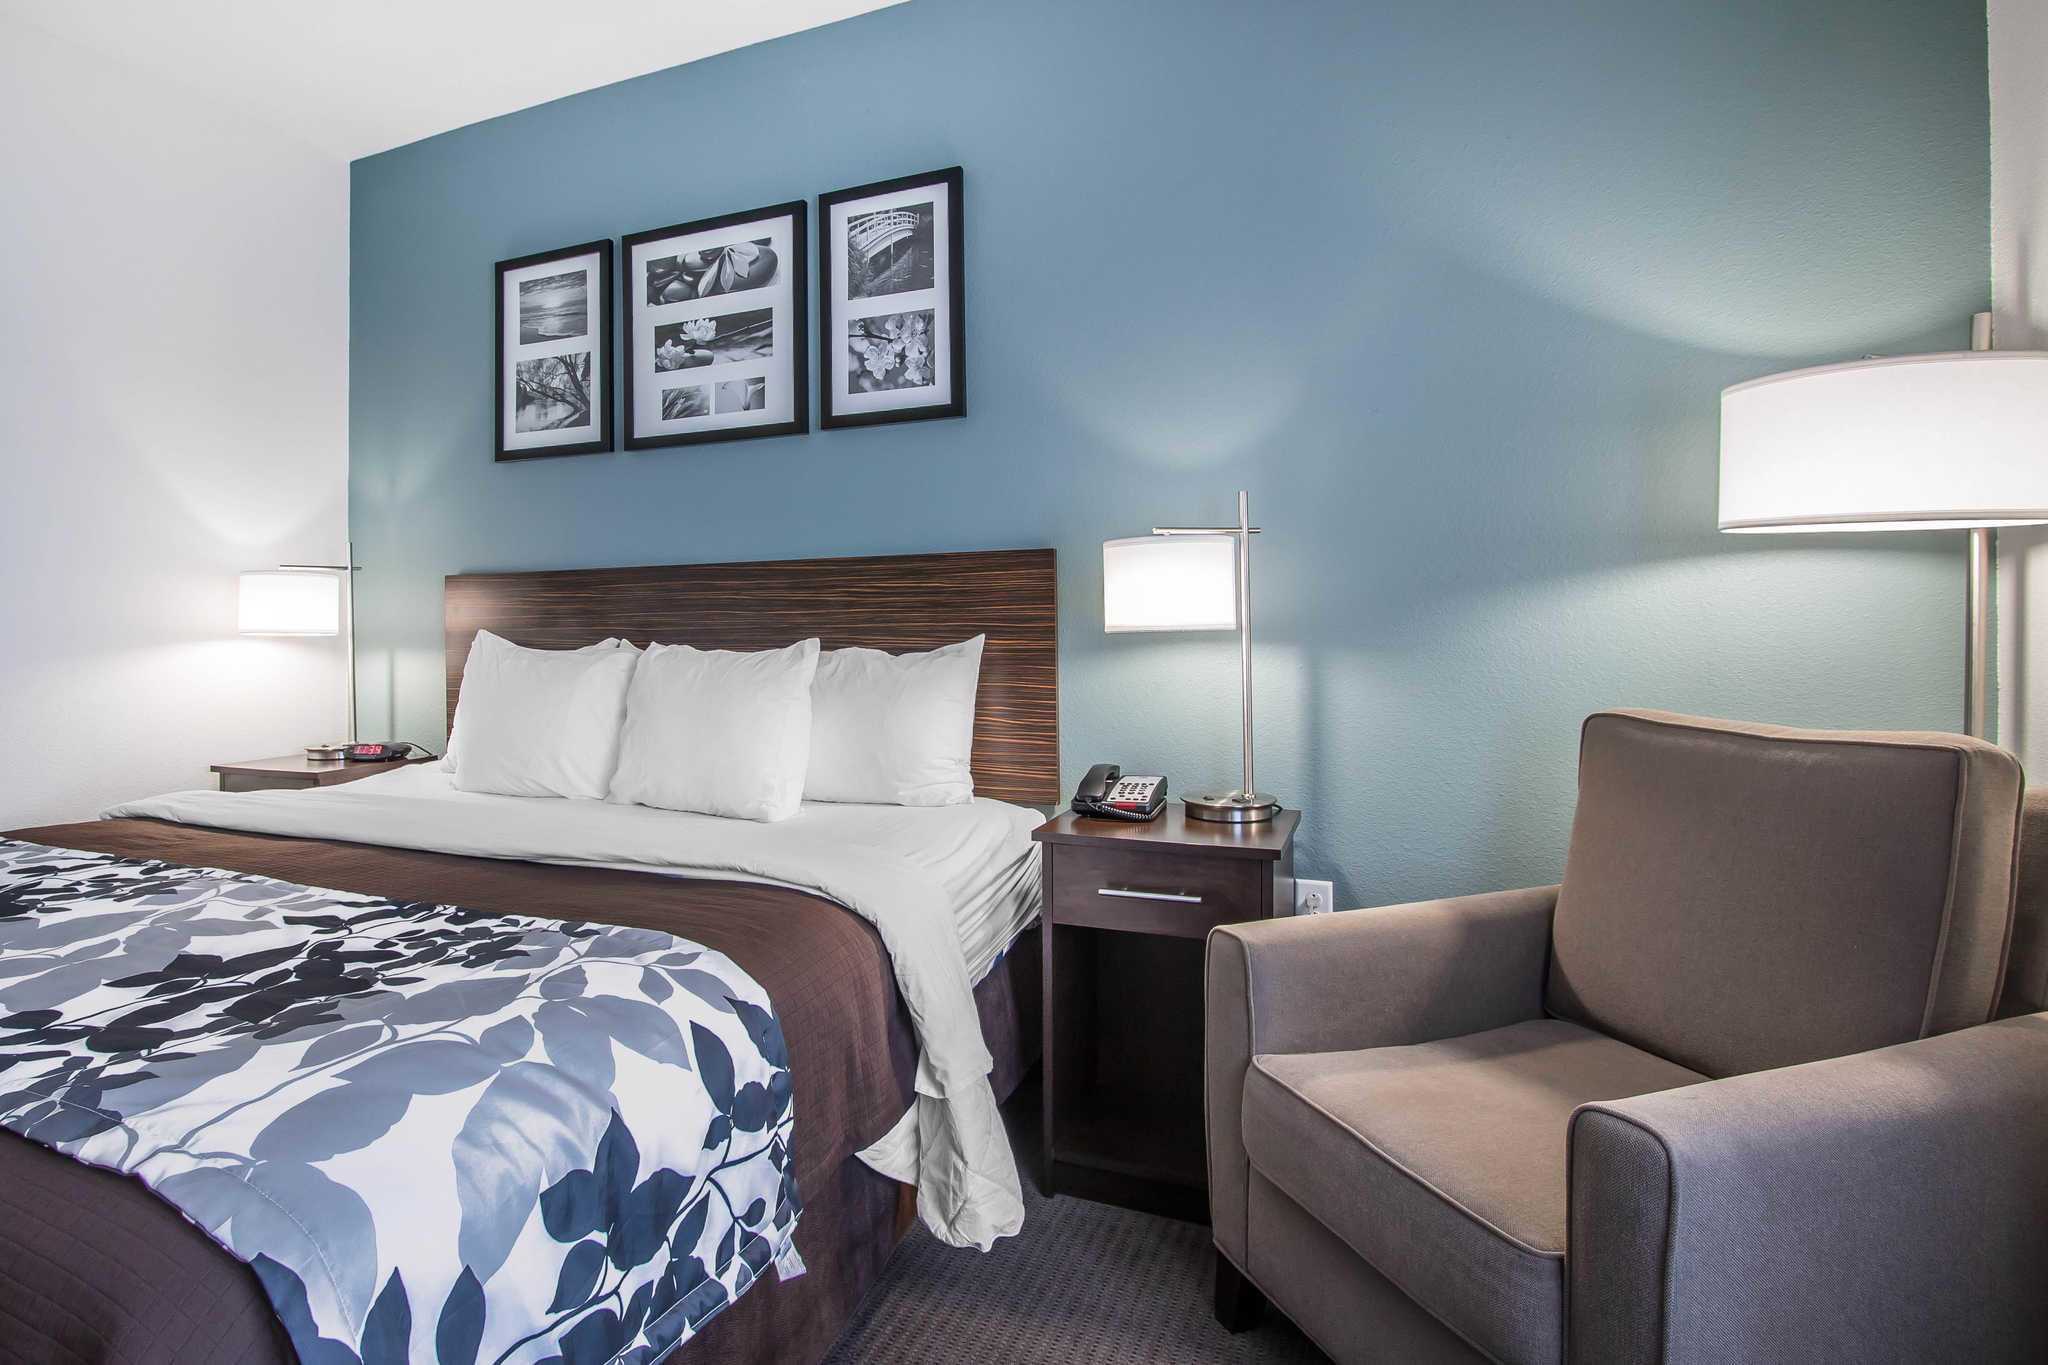 Find the latest Sleep Inn by Choice Hotels promo codes, coupons & deals for December - plus earn % Cash Back at Ebates. Join now for a free $10 Welcome Bonus.